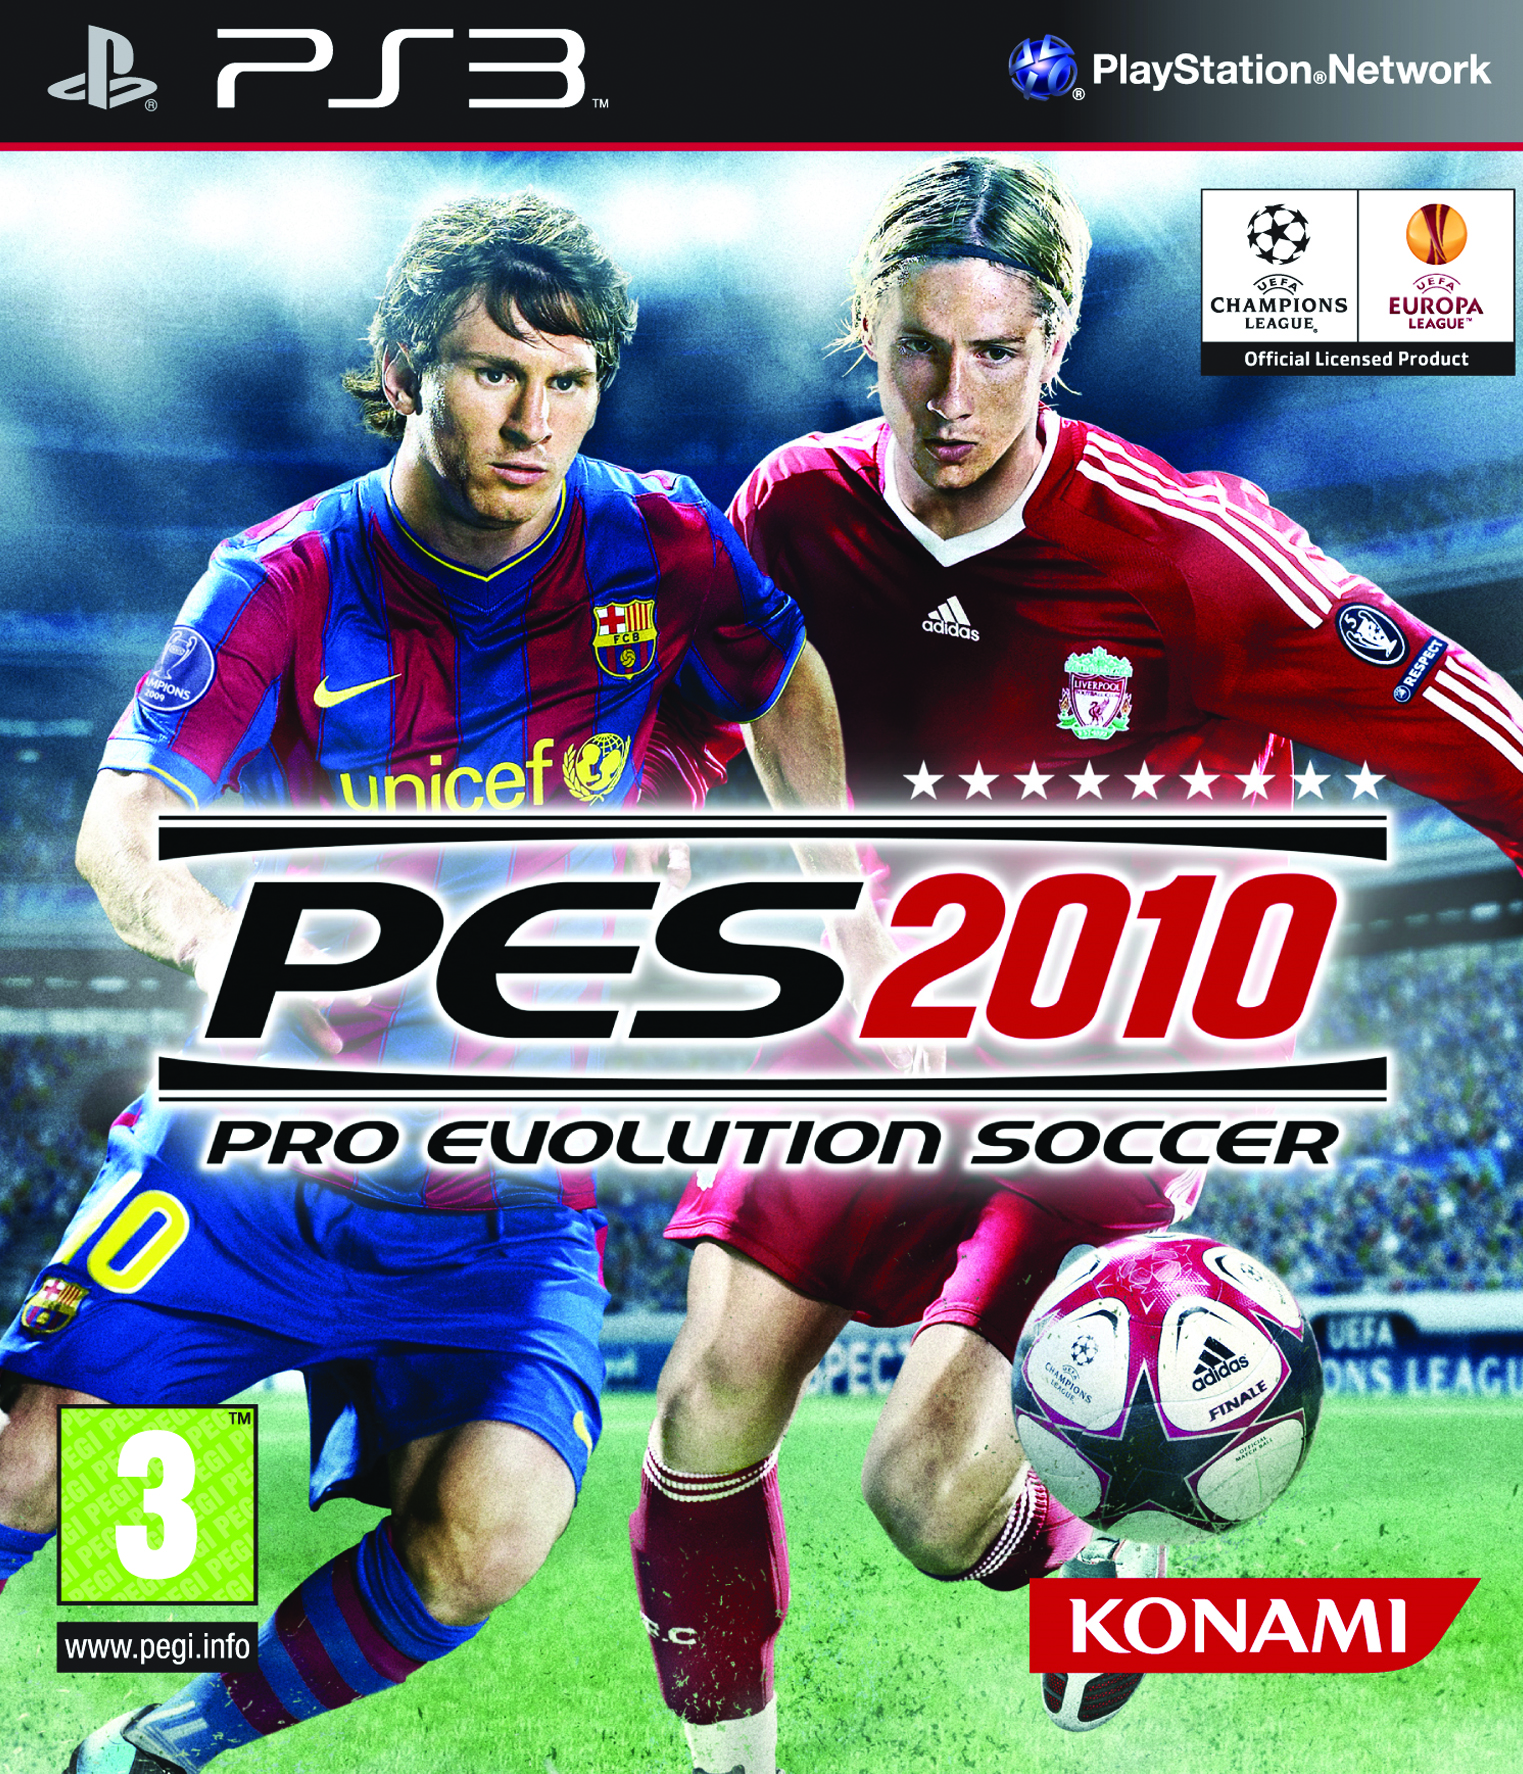 pro evolution soccer 2010 ps3 argus jeux vid o d 39 occasion cotation jeux. Black Bedroom Furniture Sets. Home Design Ideas